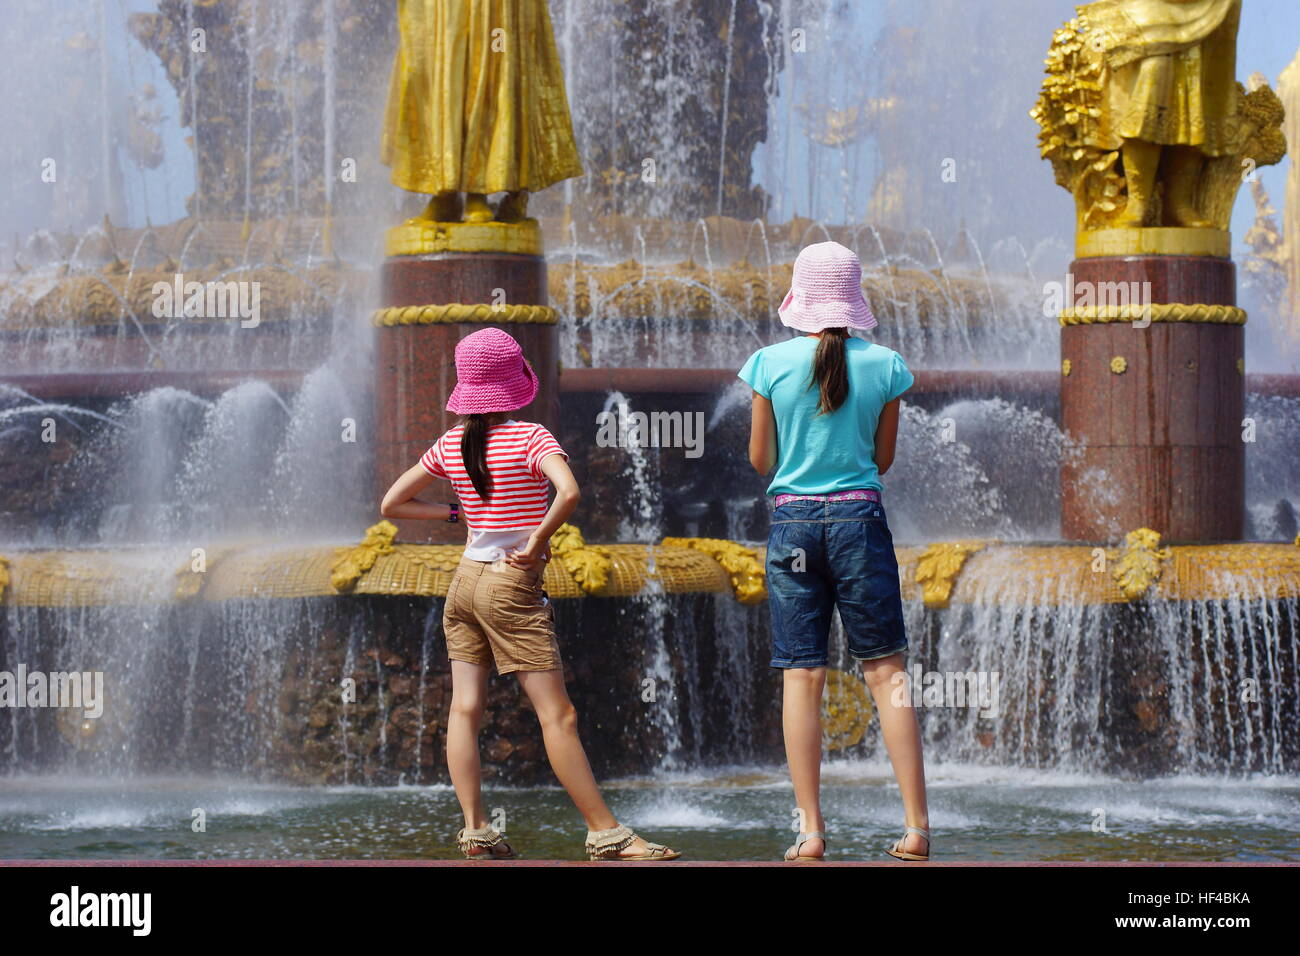 Girls at the fountain in the park at VDNKh on a hot summer day. Russia, Moscow, VDNKh. July 22, 2014 - Stock Image